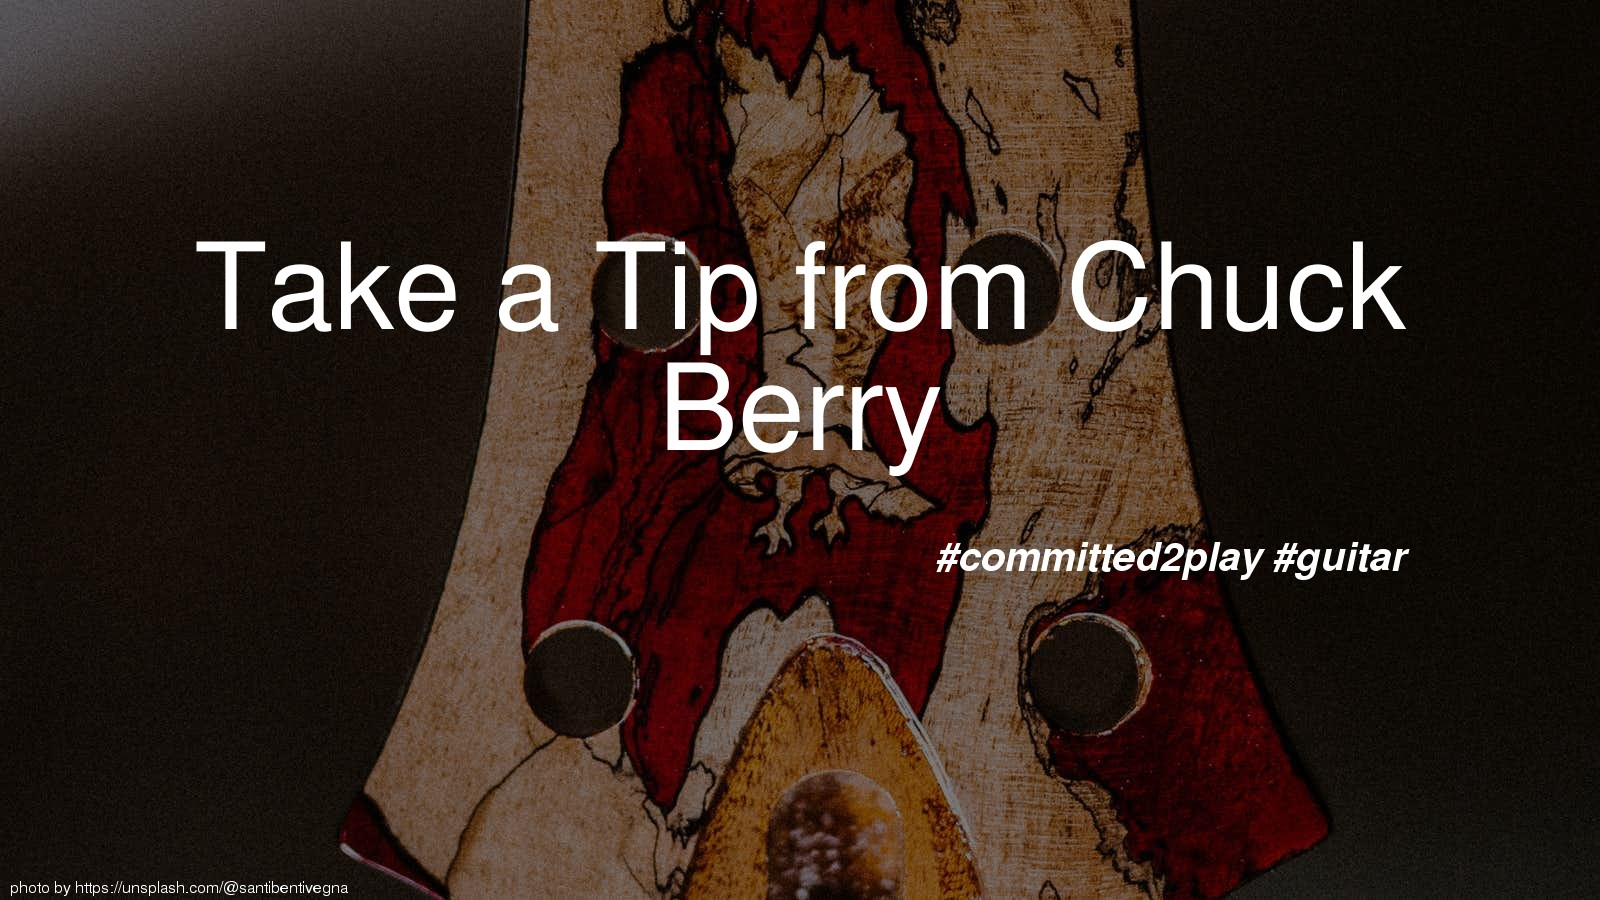 Take a Tip from Chuck Berry